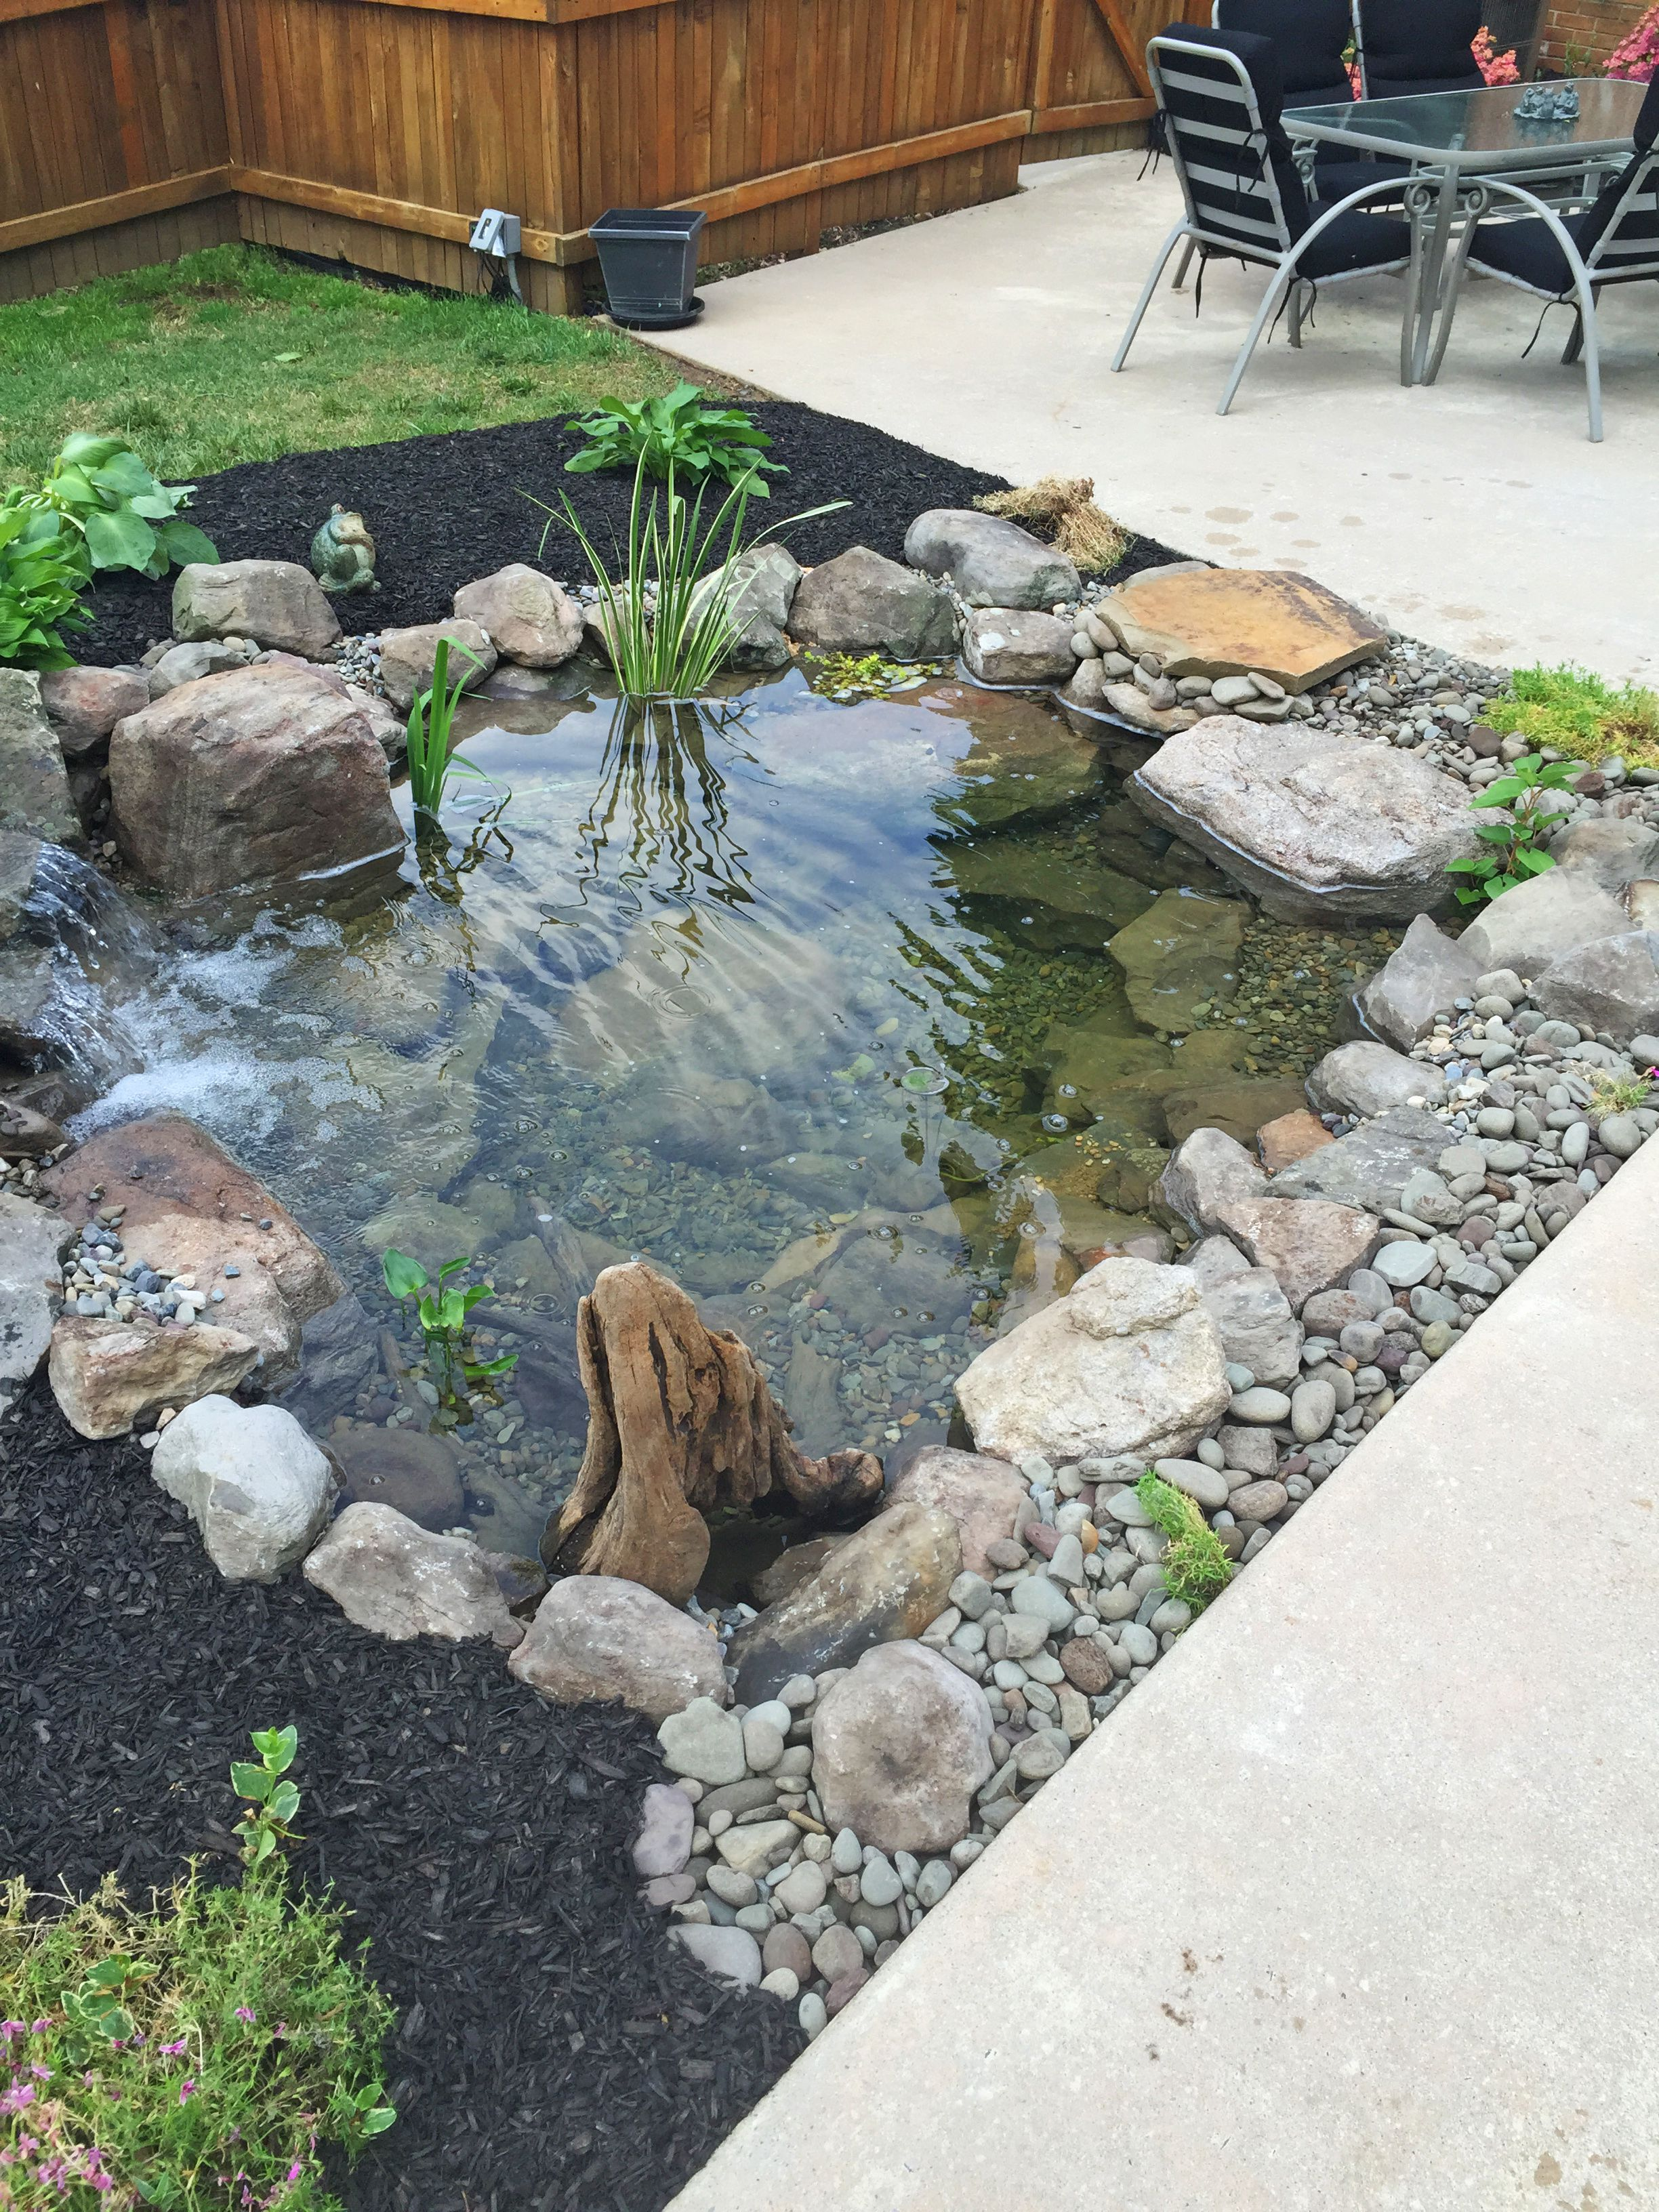 Backyard fish pond waterfall koi water garden waterscapes for Ponds to fish in near me